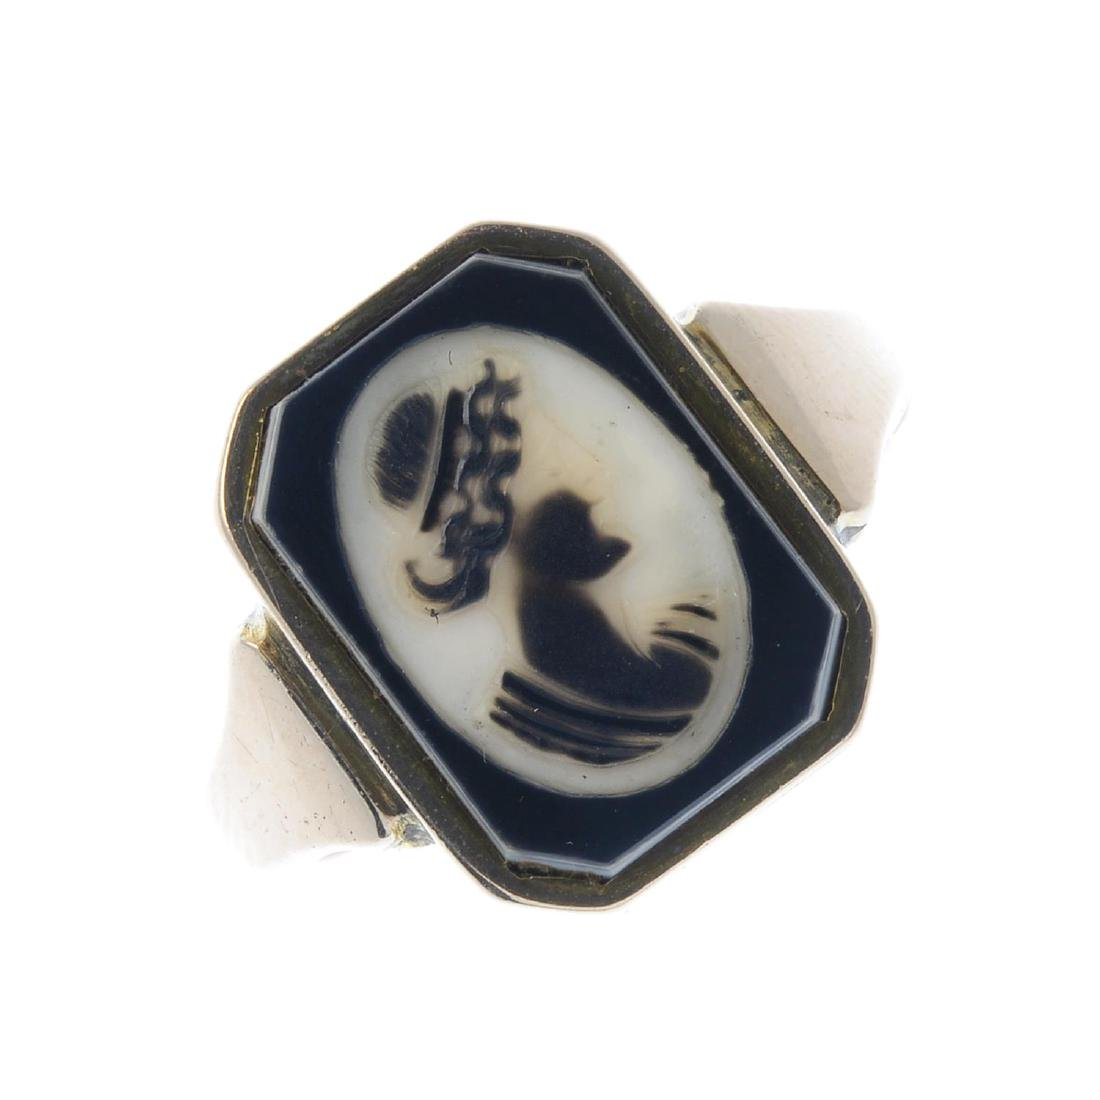 A mid 20th century onyx cameo signet ring. Designed as